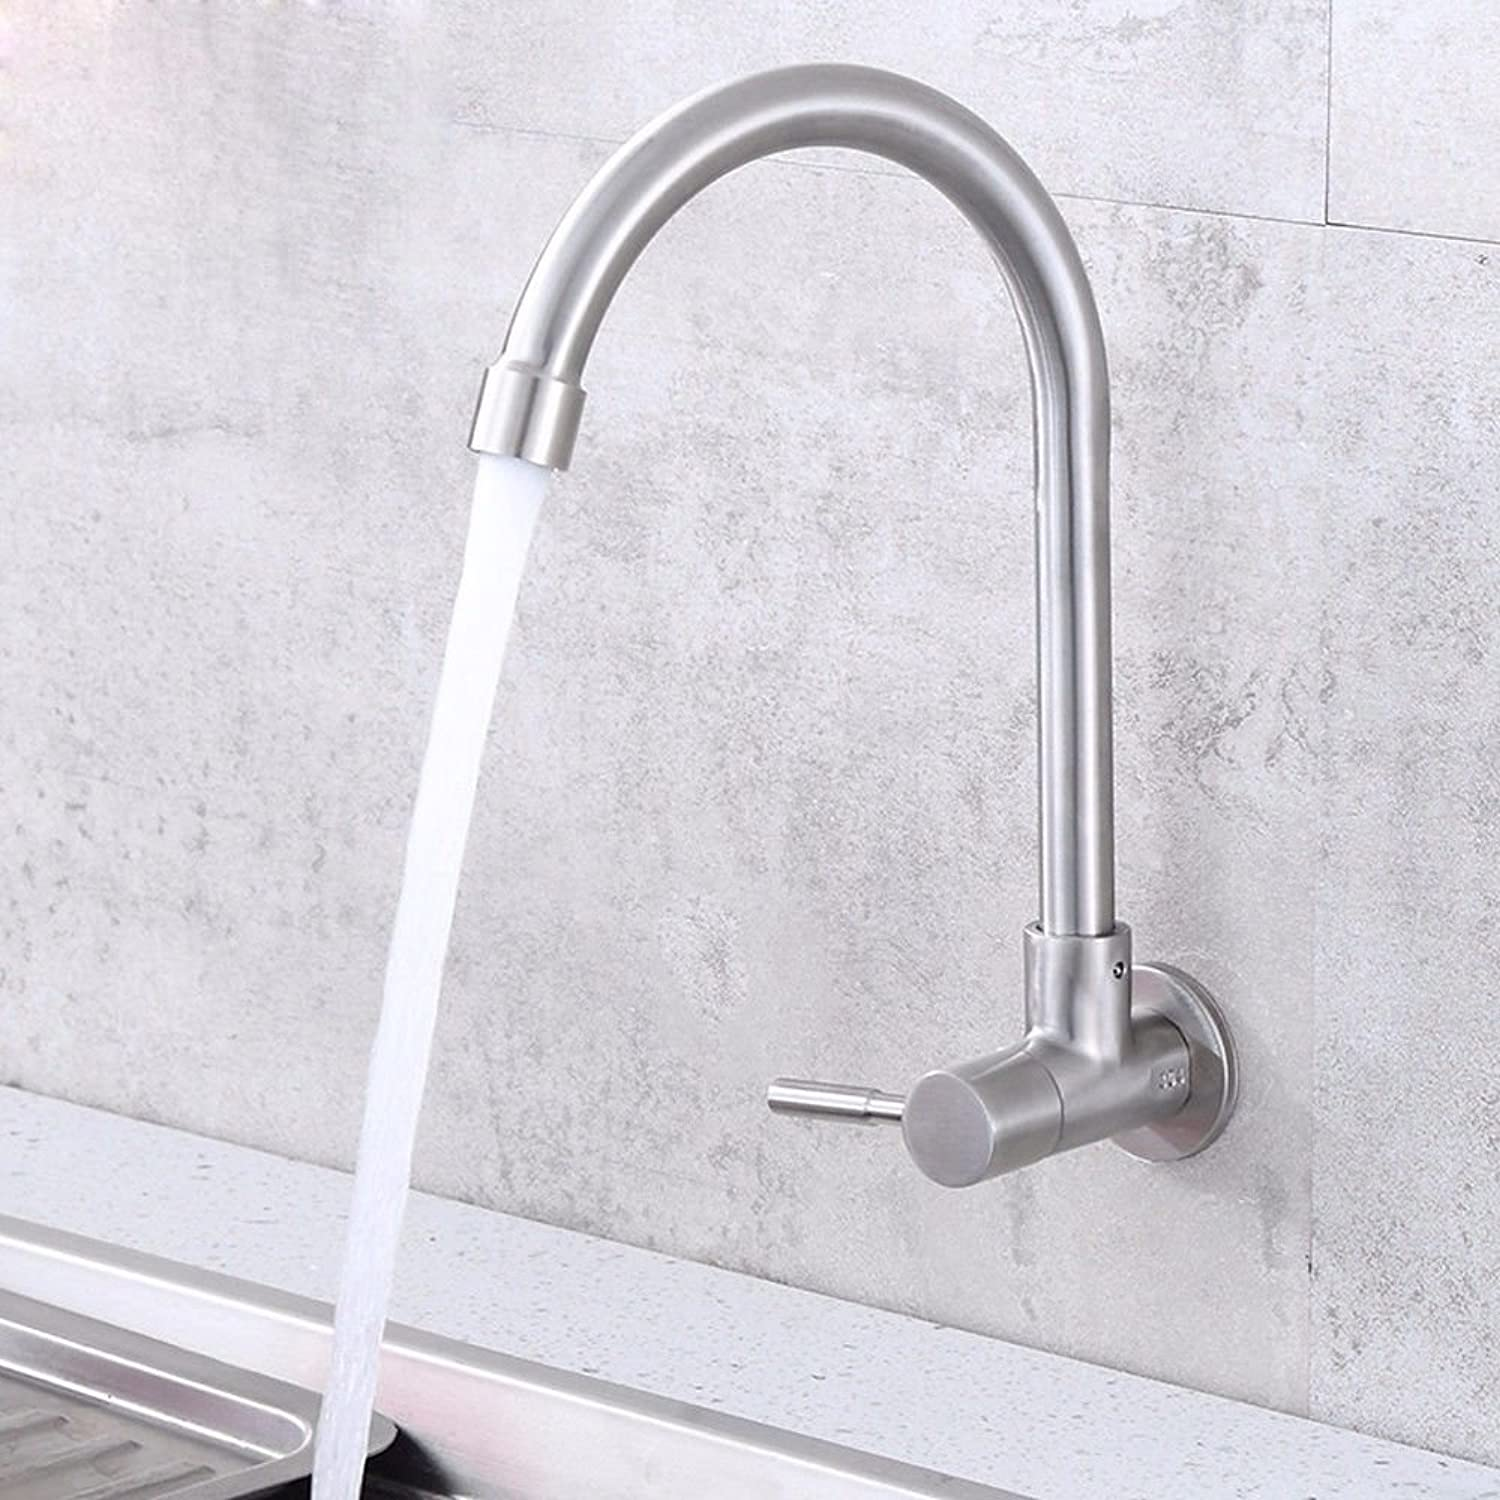 Lpophy Bathroom Sink Mixer Taps Faucet Bath Waterfall Cold and Hot Water Tap for Washroom Bathroom and Kitchen Stainless Steel Wall-Mounted Wall Single Cold